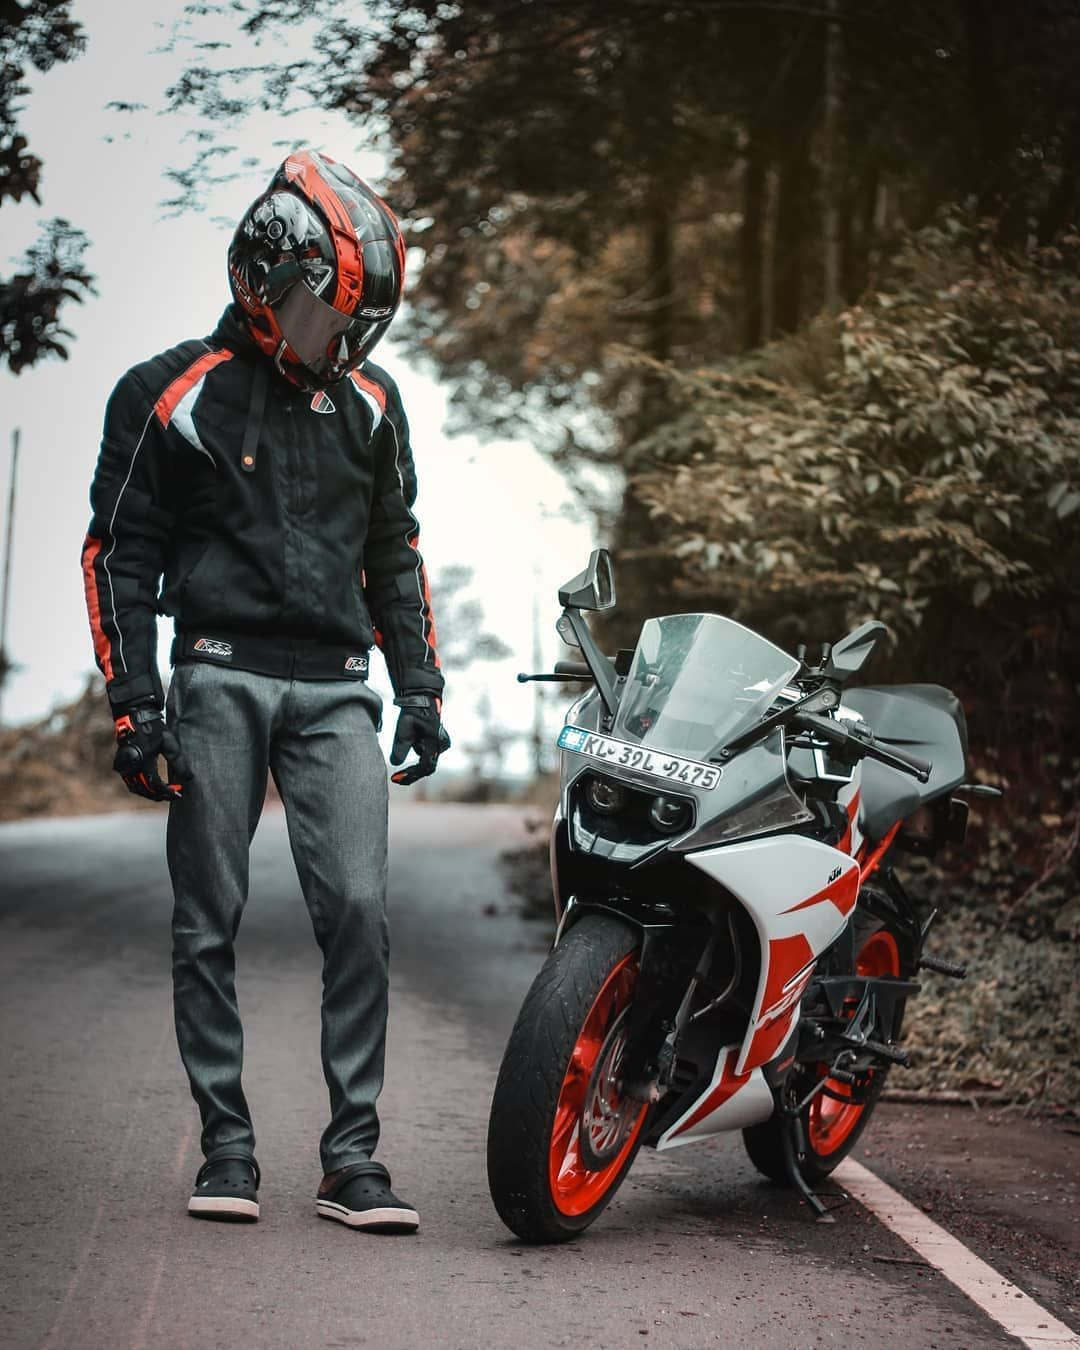 Ktm bike Duke bike, Bike photography, Ktm rc